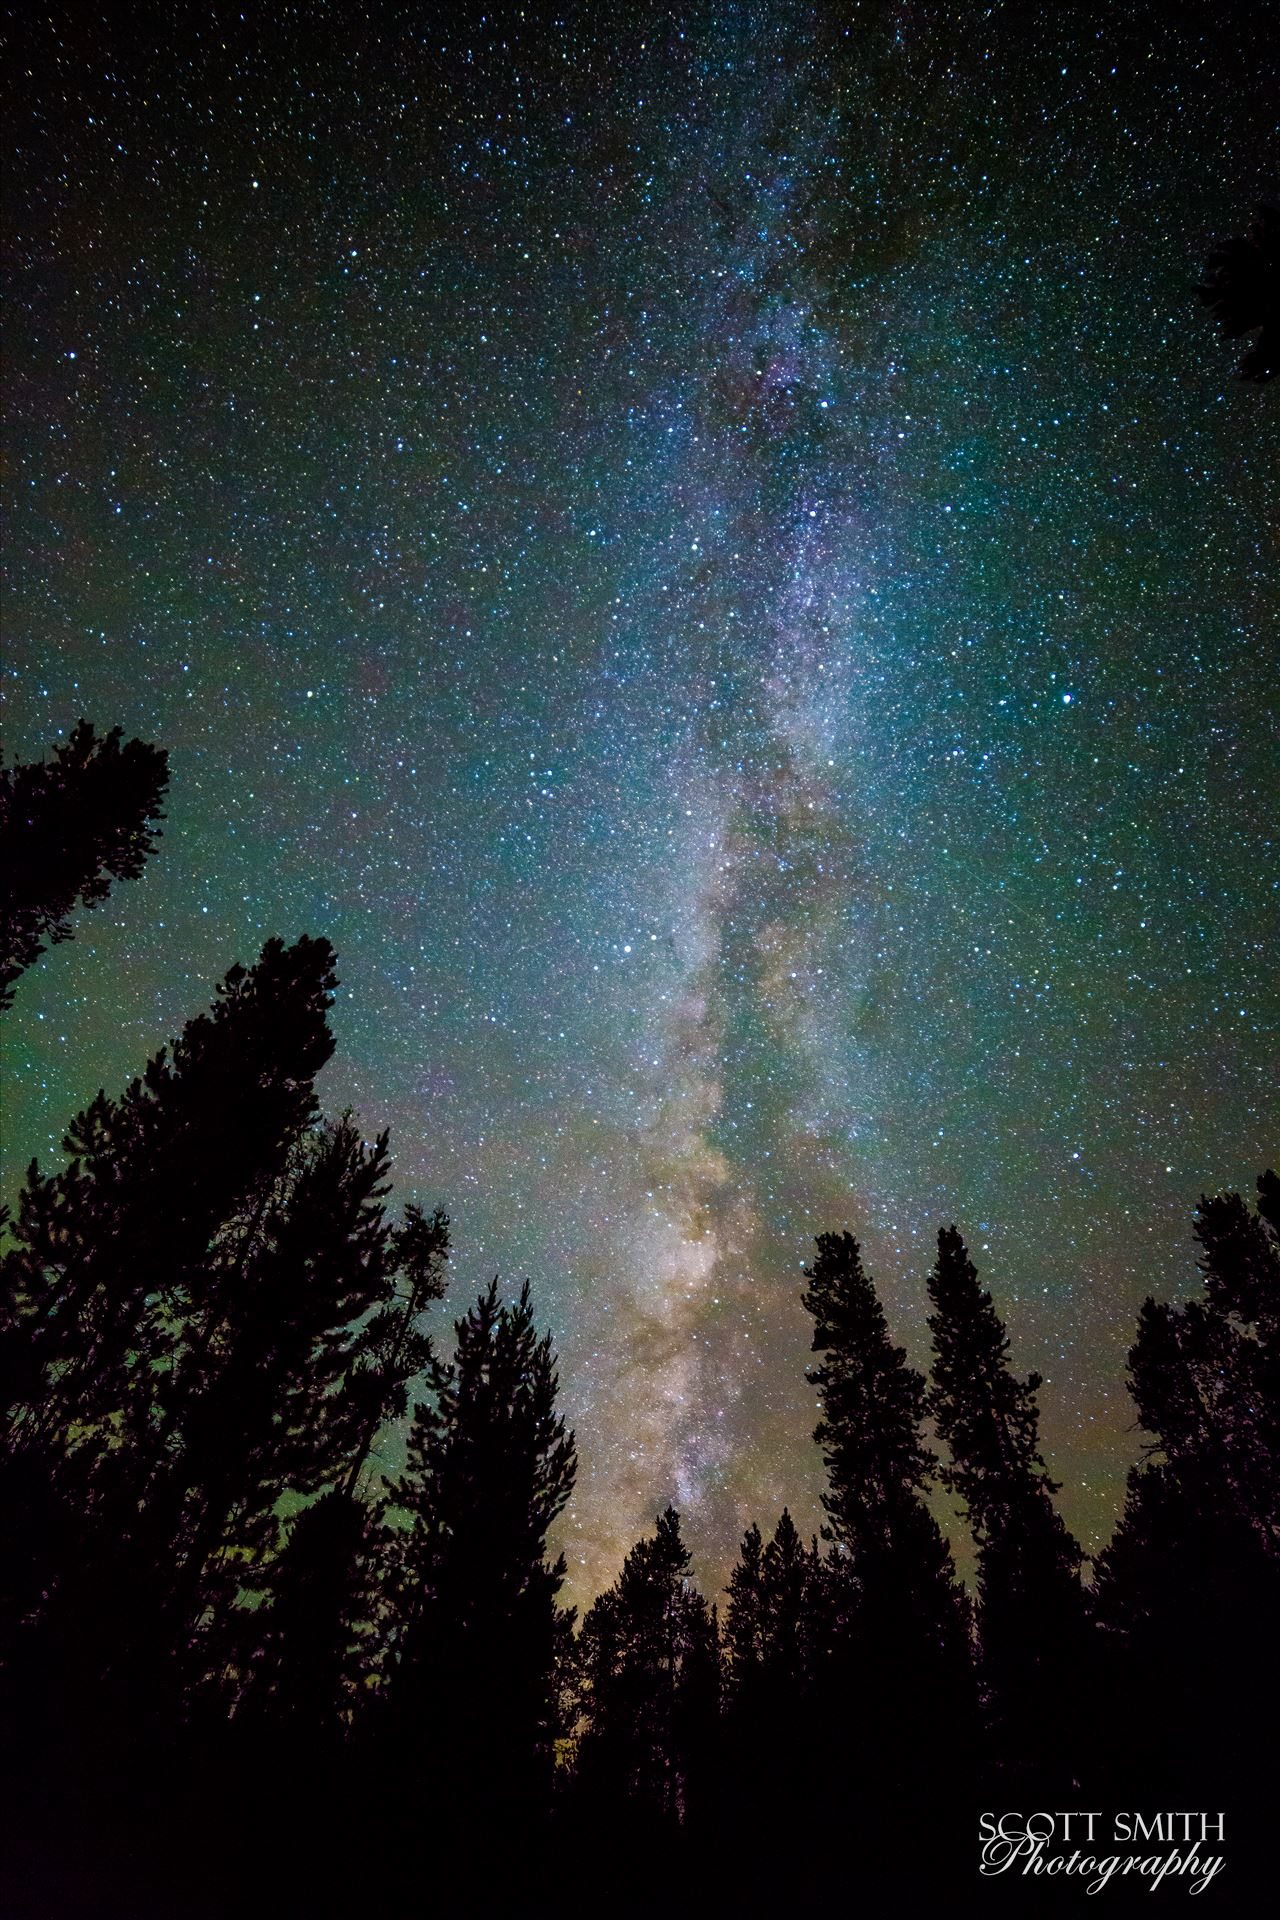 Leadville Starry SkyAnother beautiful view of the milky way from our campsite at Turquoise Lake, Leadville Colorado.